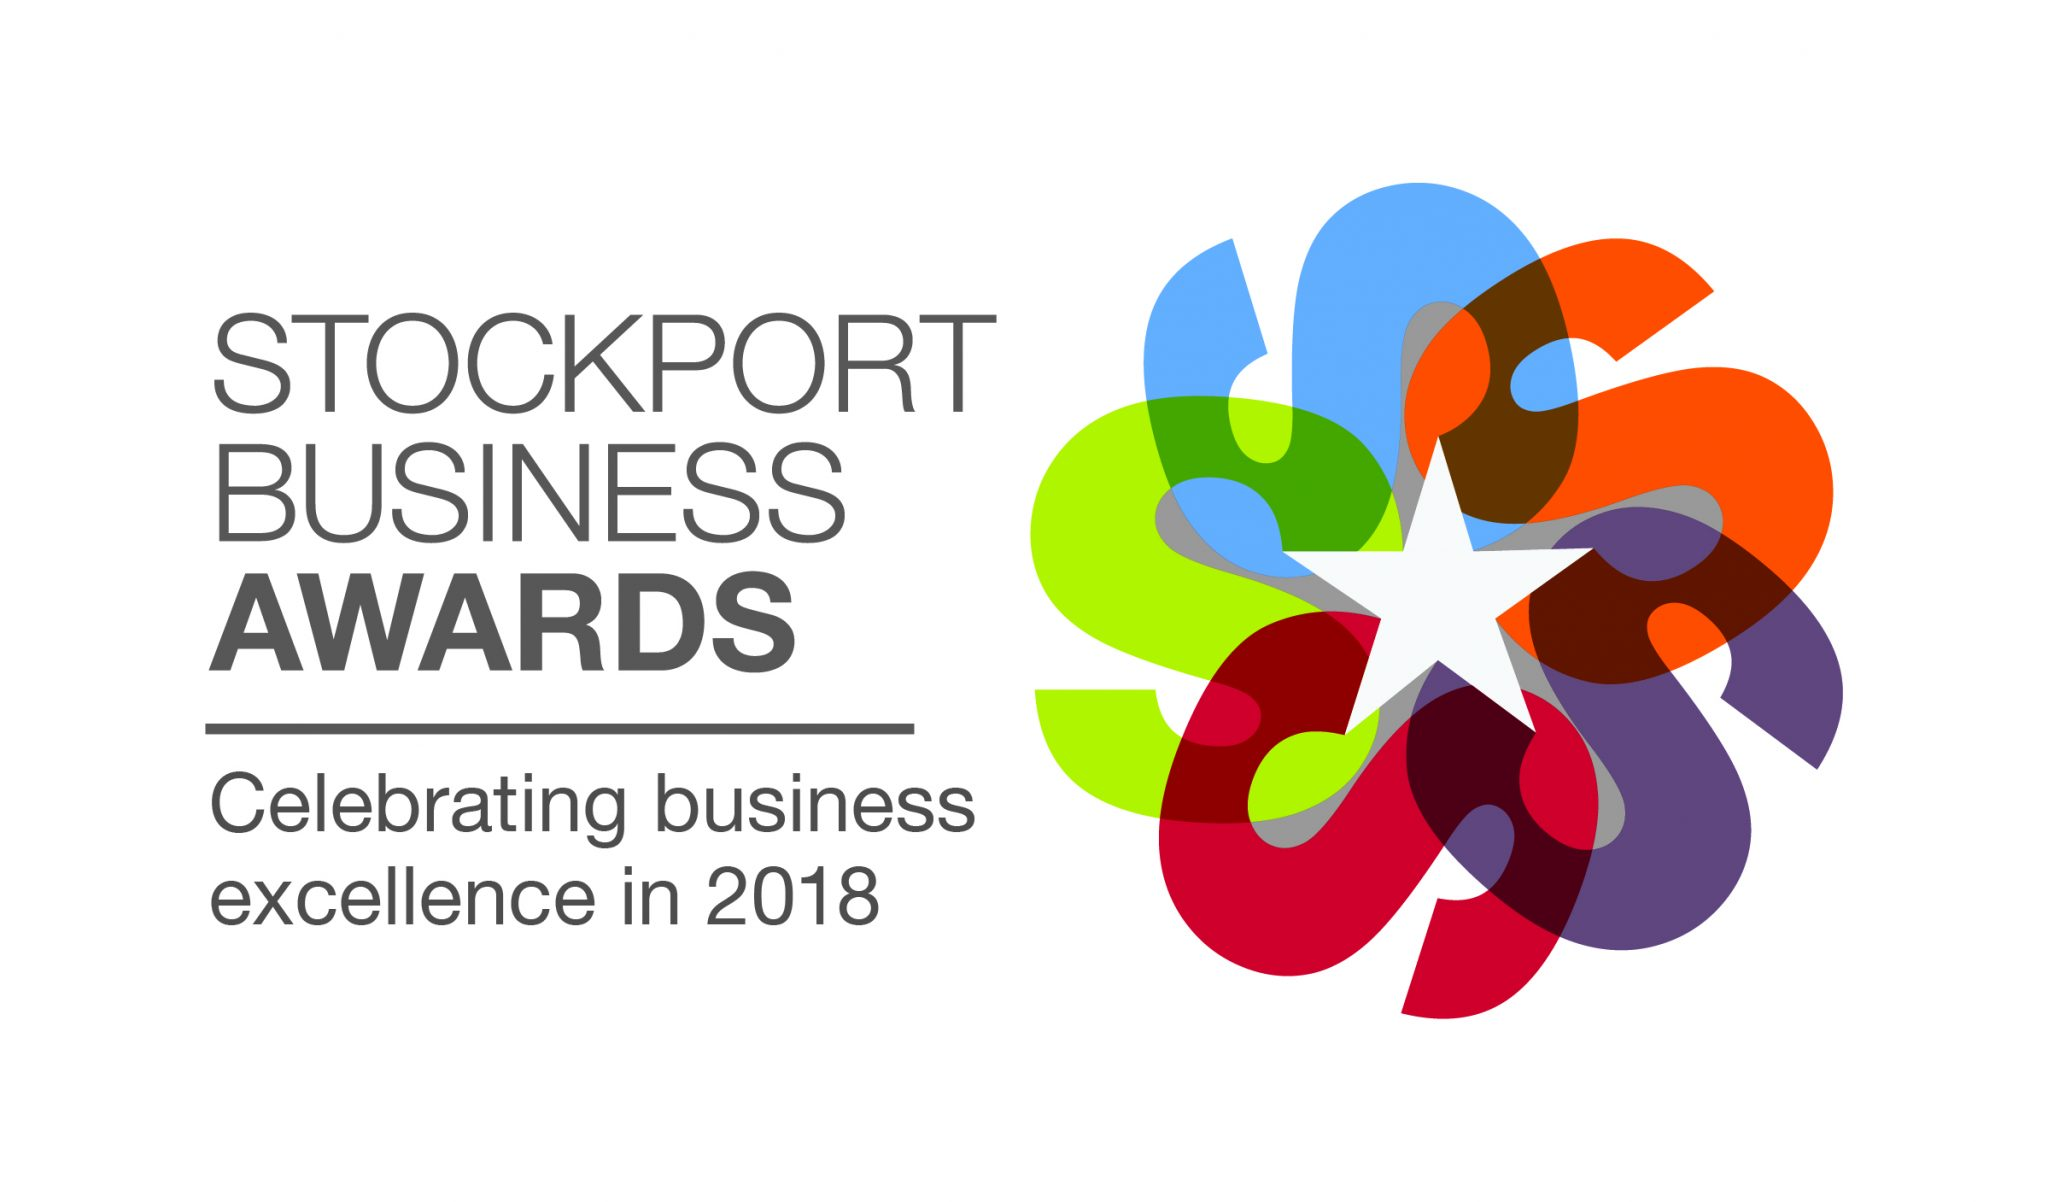 Stockport Business Awards